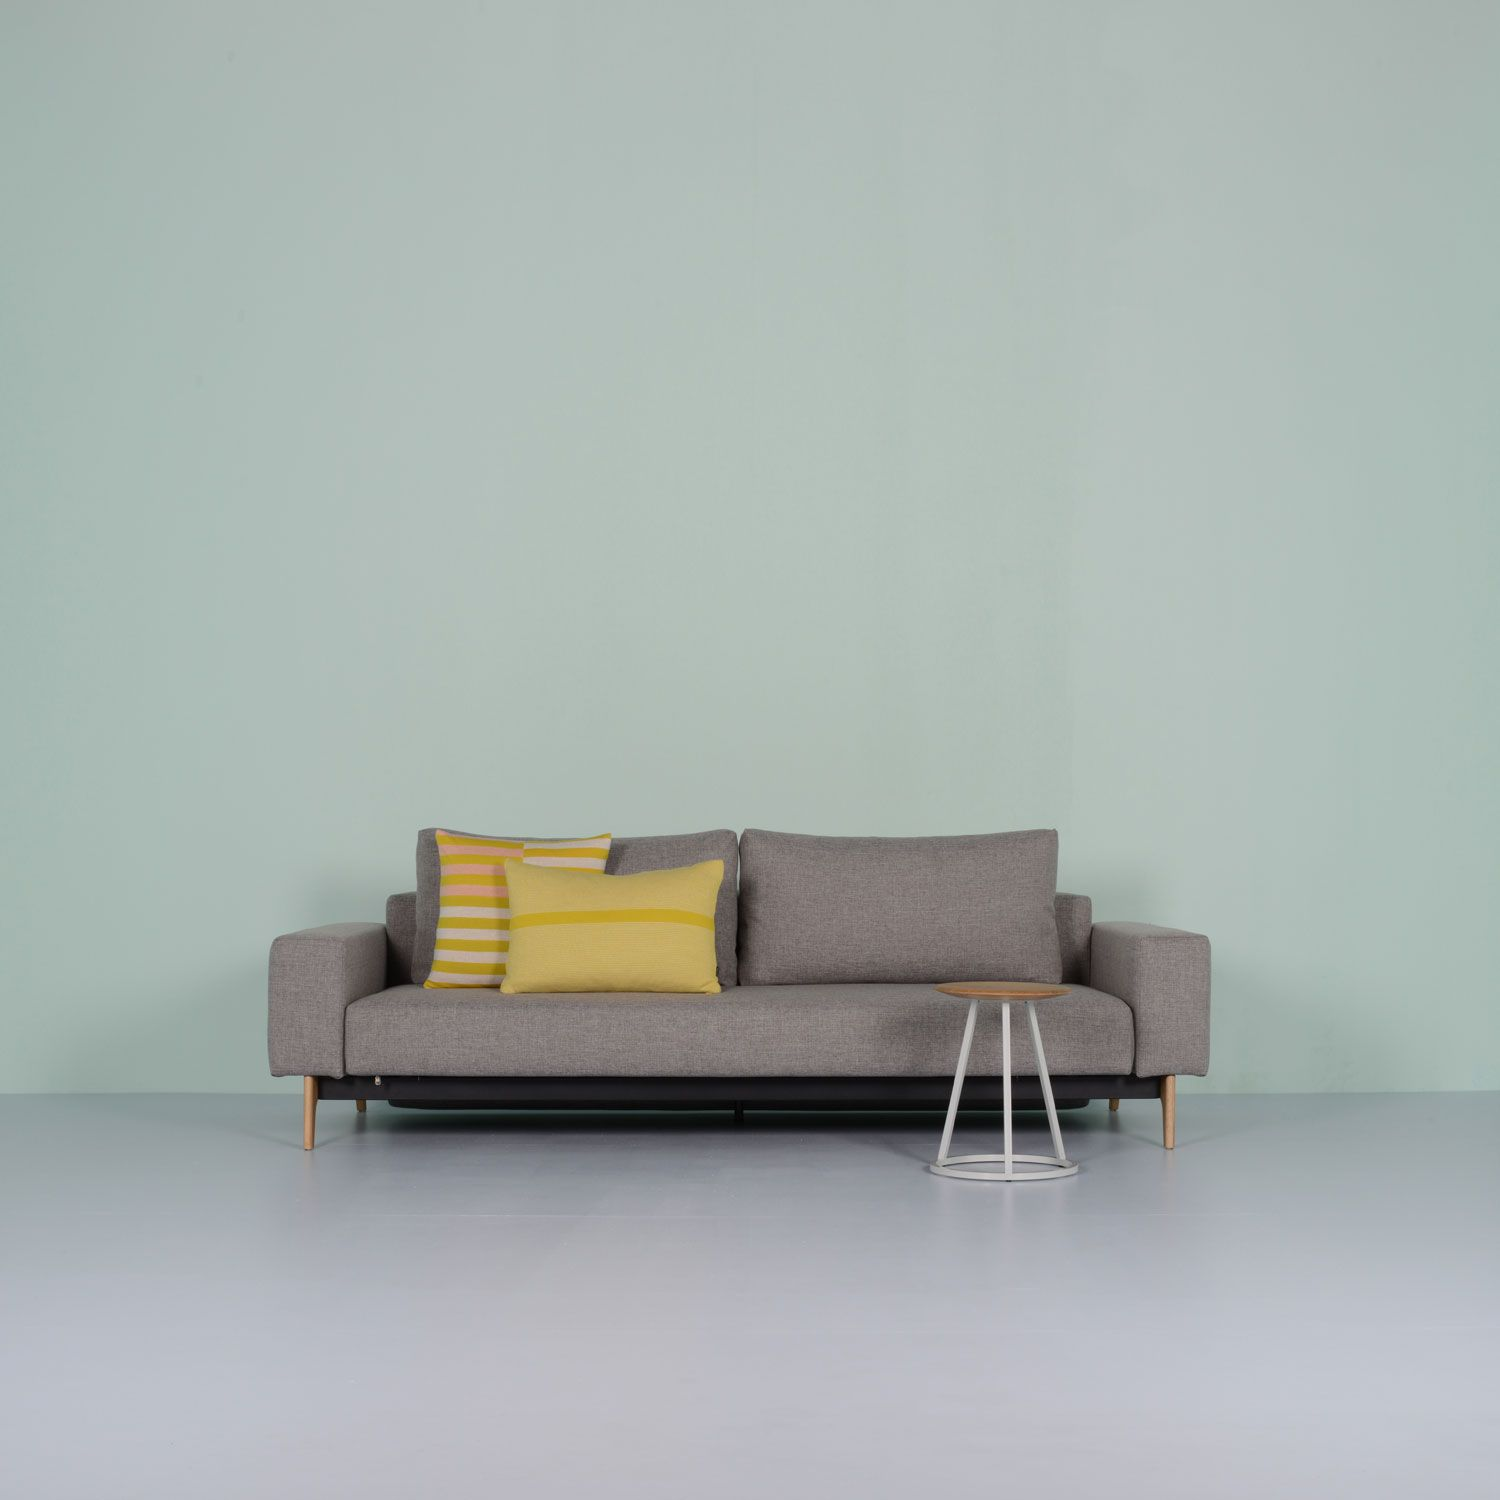 Ambrose Adapt Sofa Bed By Per Weiss   Sofabeds   Sofas   Furniture   Healu0027s  Photos